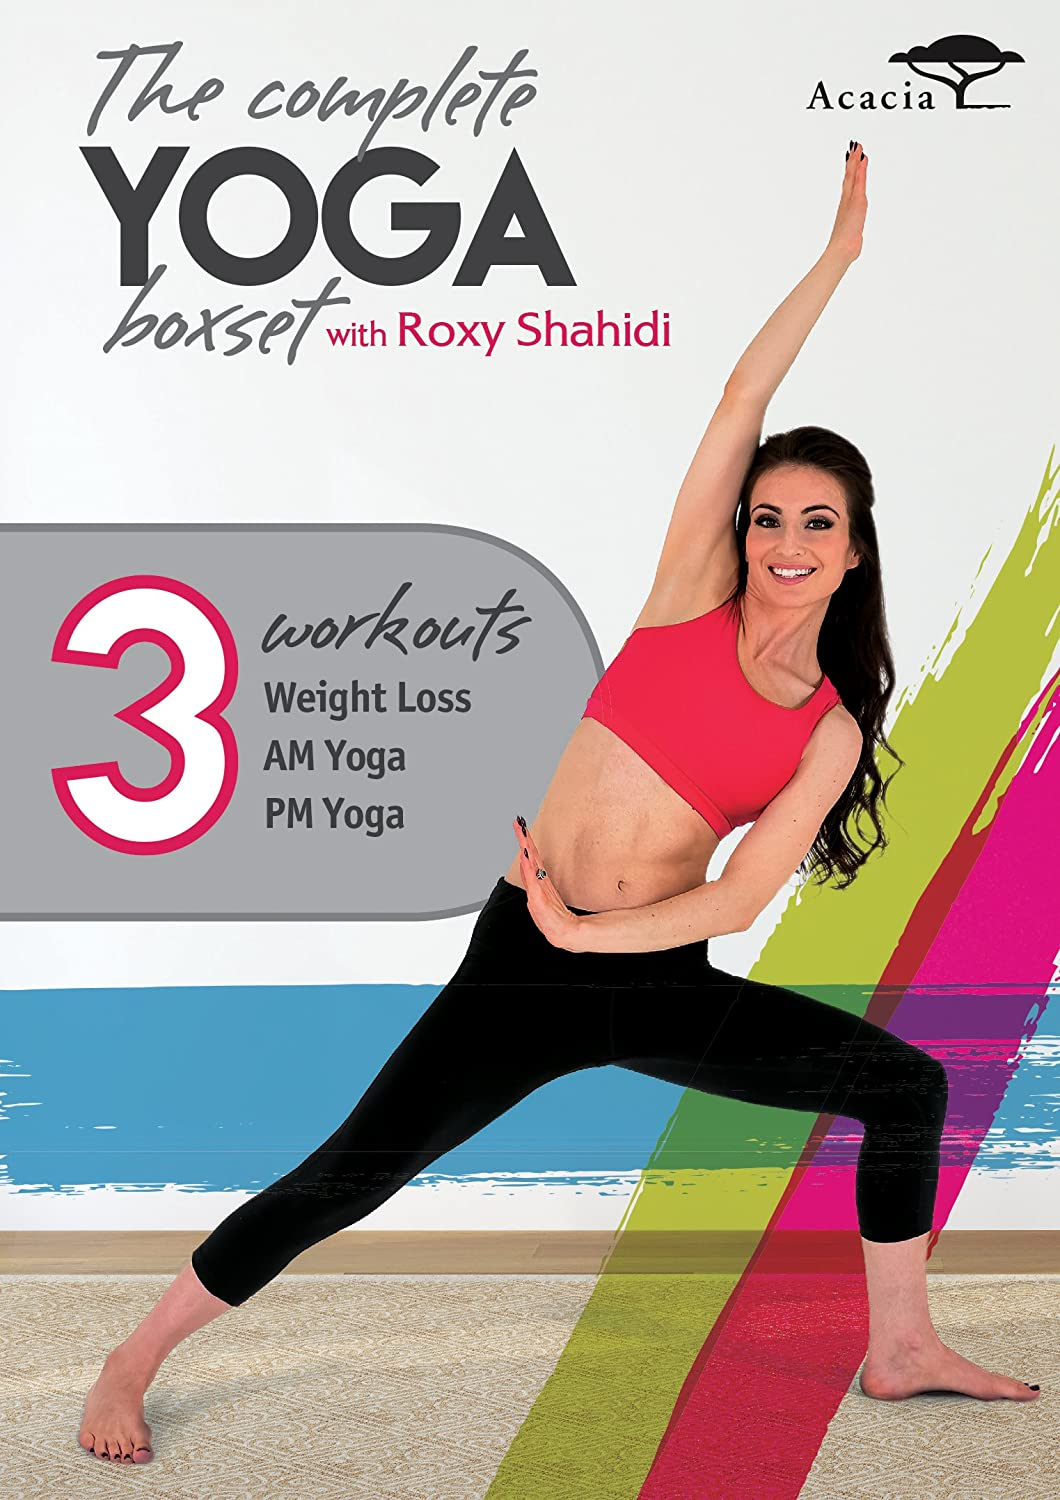 Amazon.com: The Complete Yoga Collection With Roxy Shahidi ...